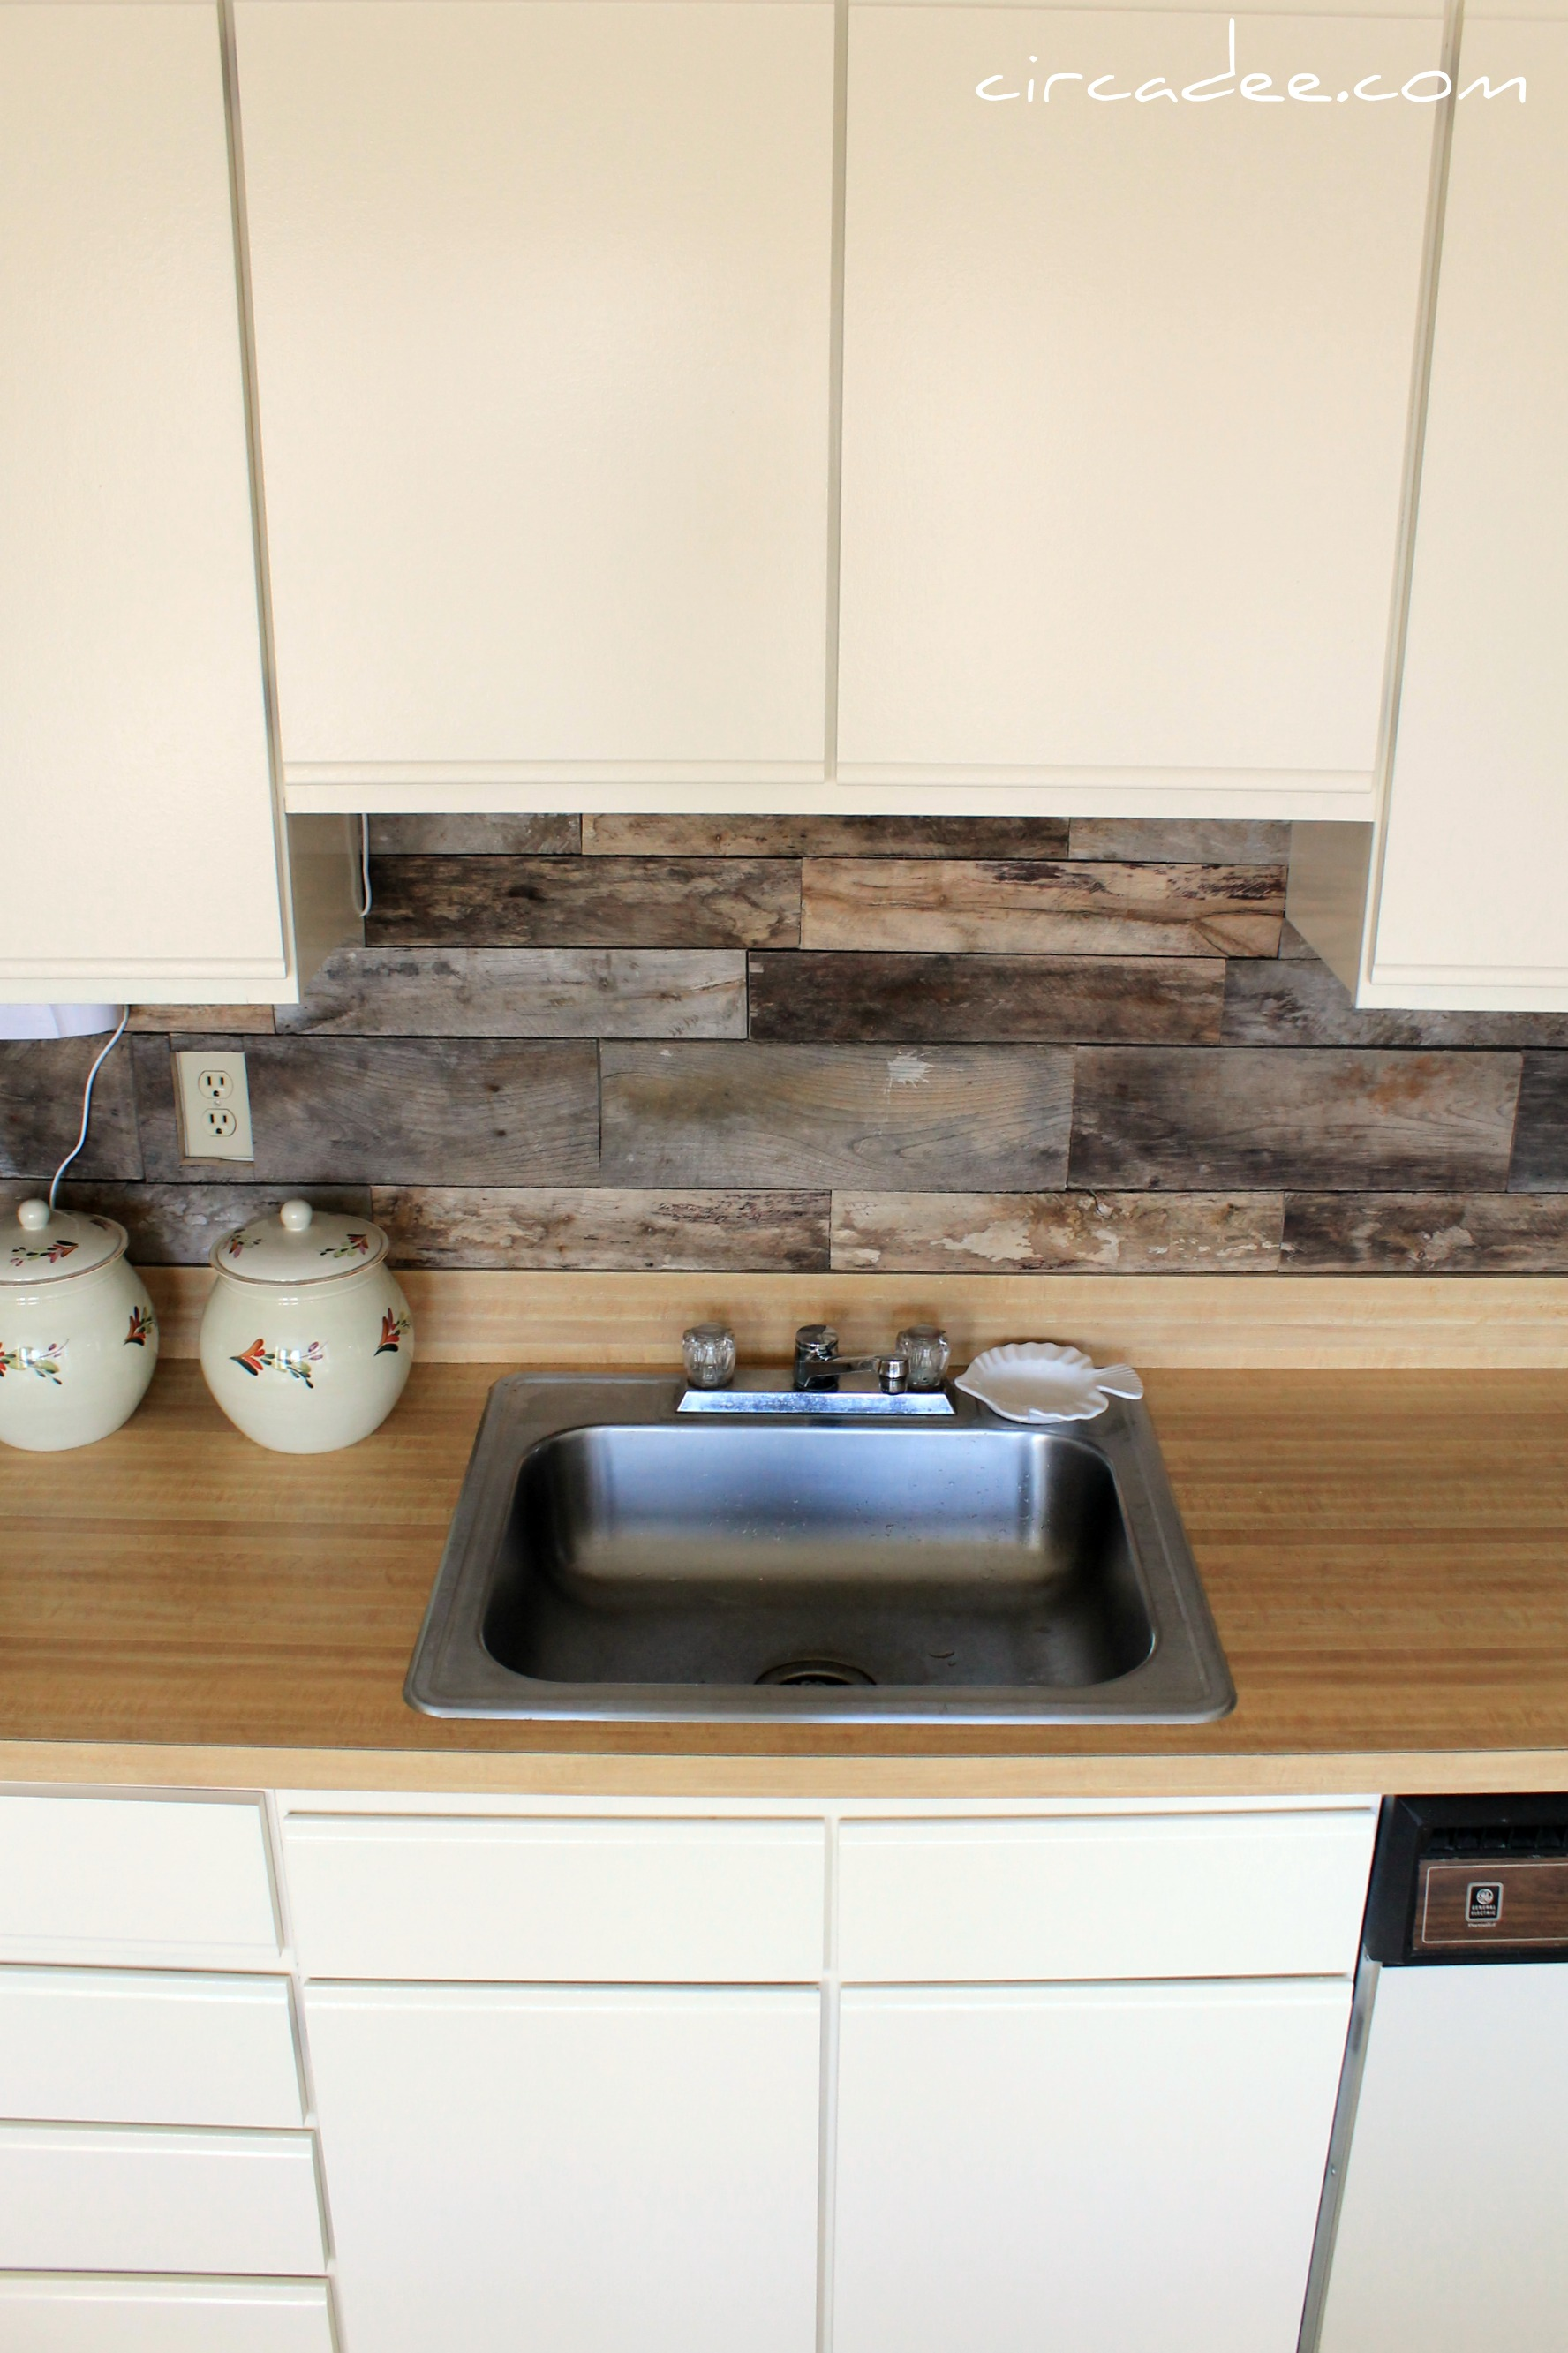 Last Week We Spent Some Time Focusing On The Dated Galley Kitchen In Cape  May. The Cabinets, Appliances, Countertop And Backsplash Were All Very Late  80u2032s ...